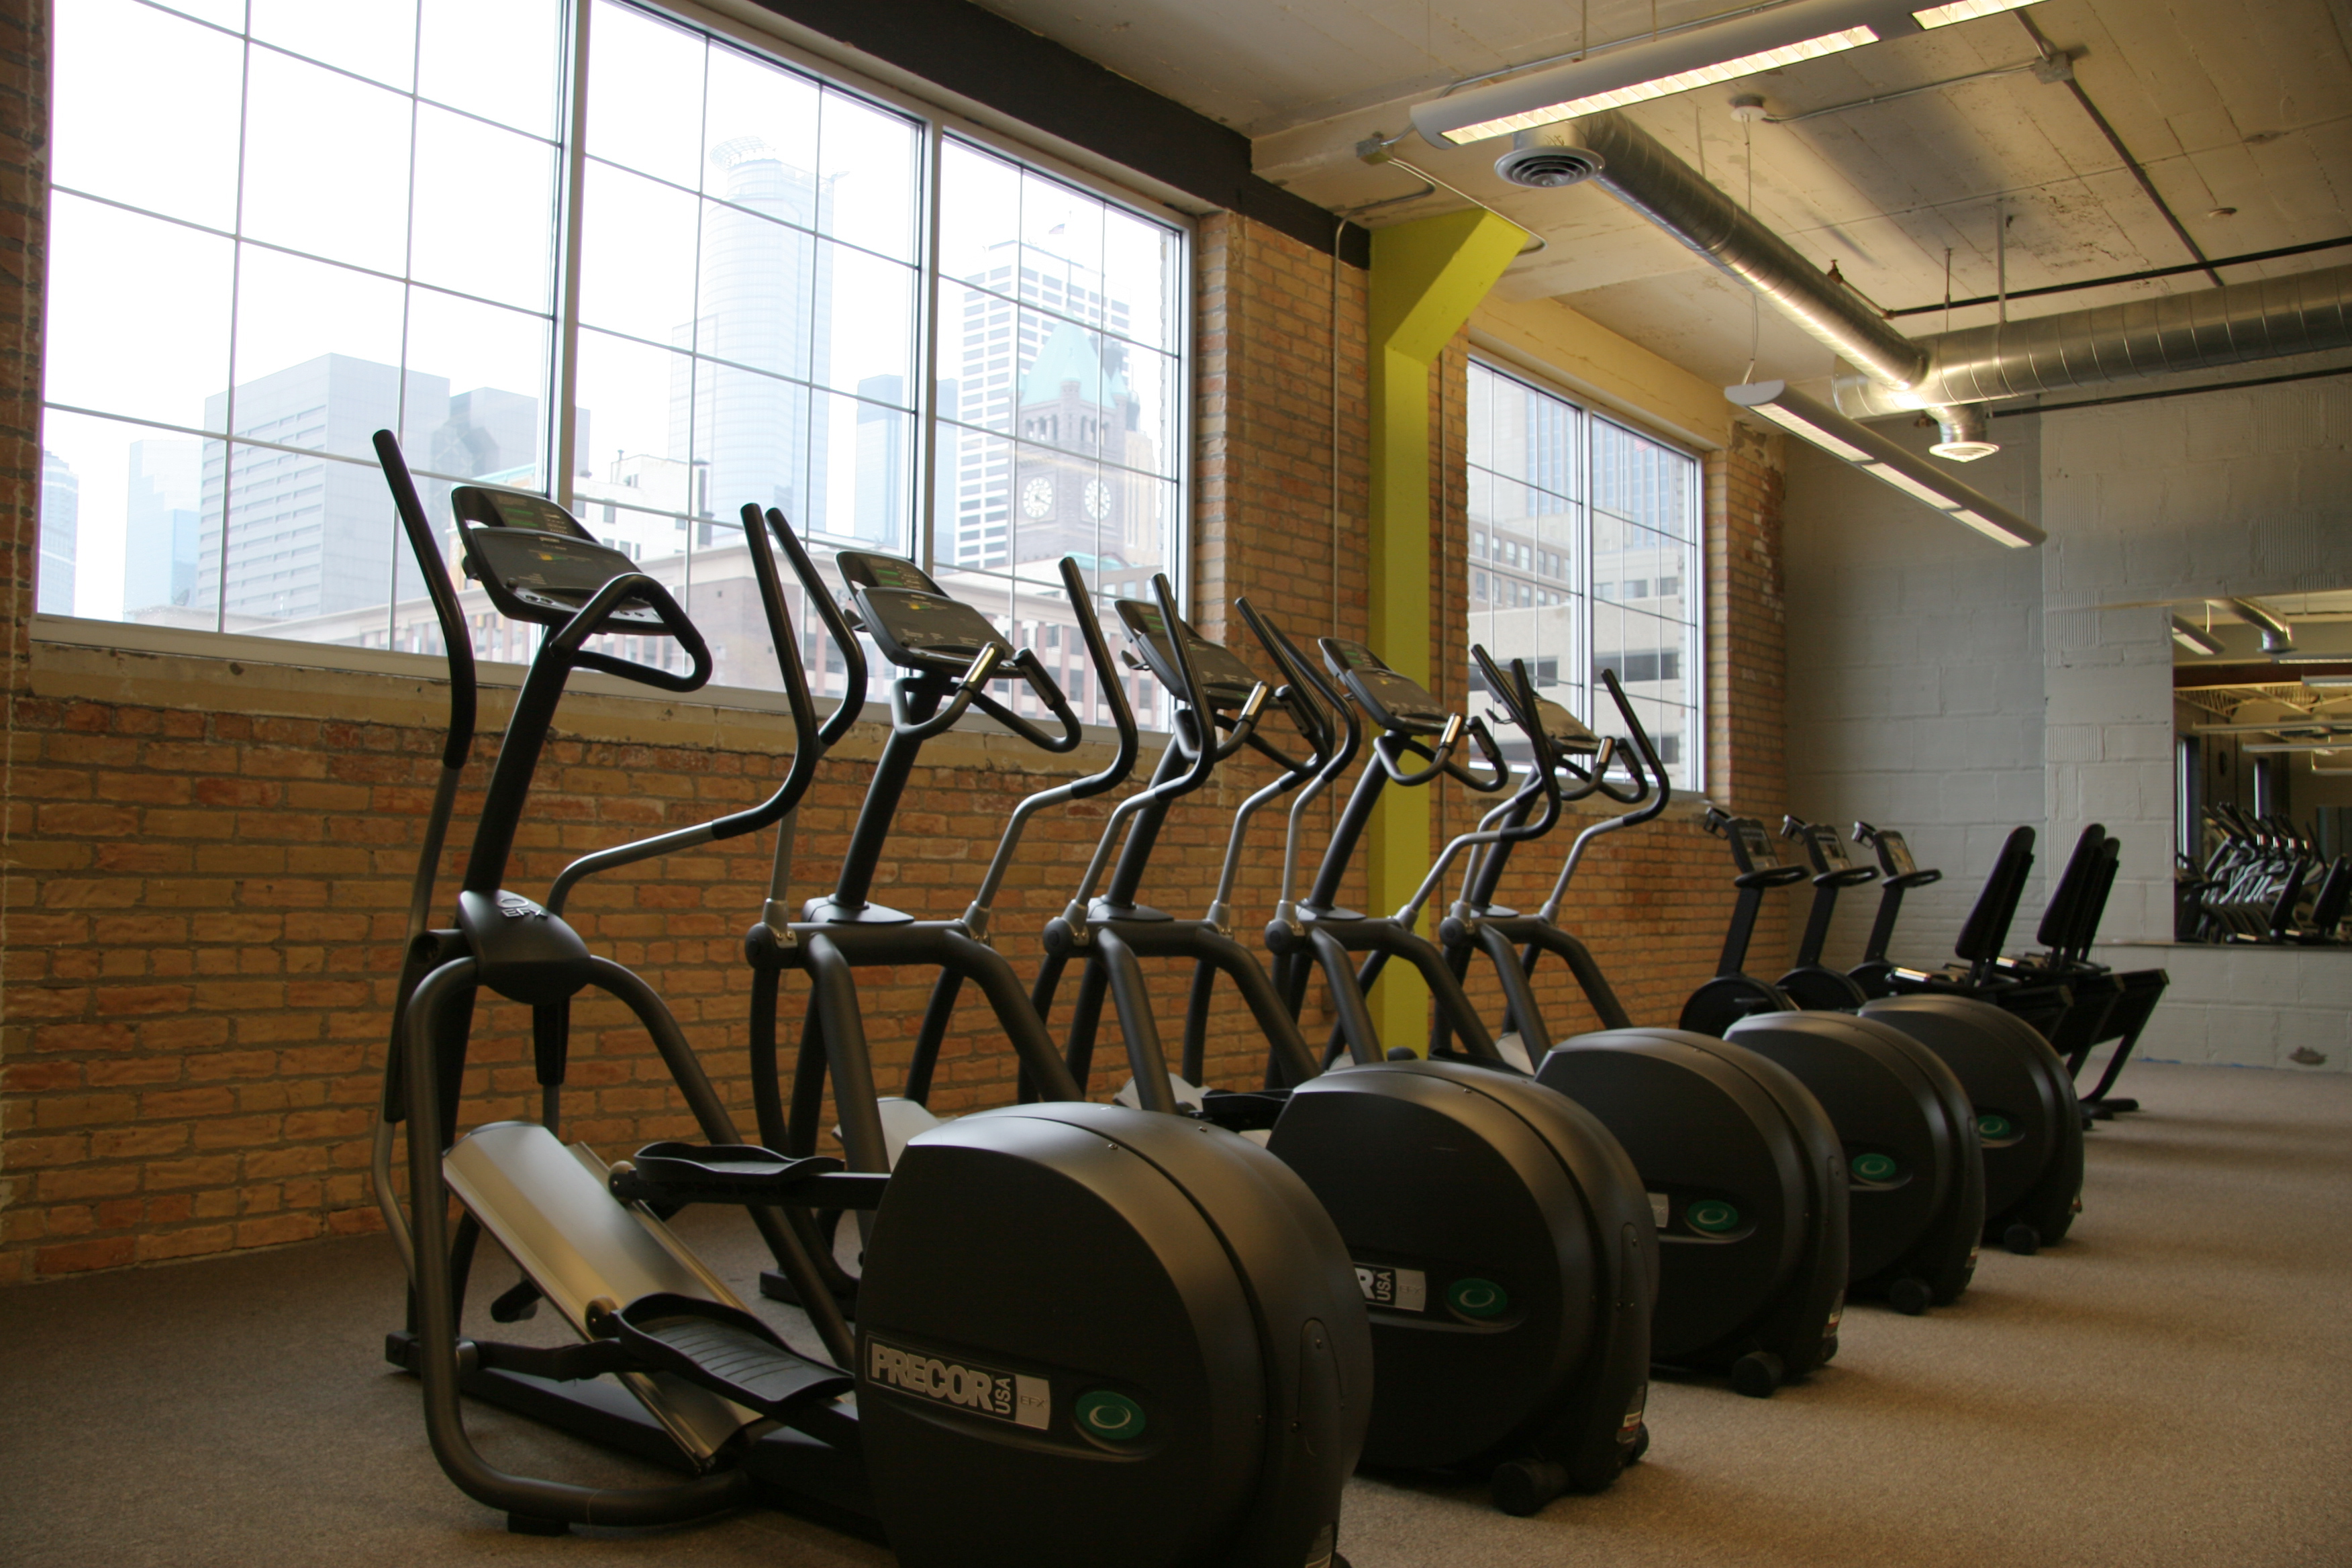 Fitness center gym venue for rent in minneapolis